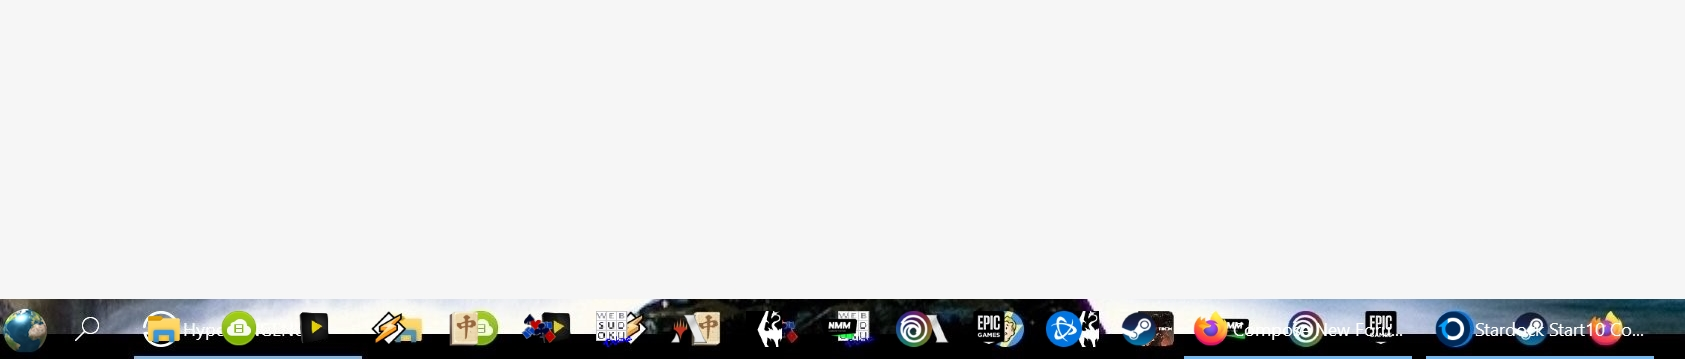 Picture of taskbar showing doubles